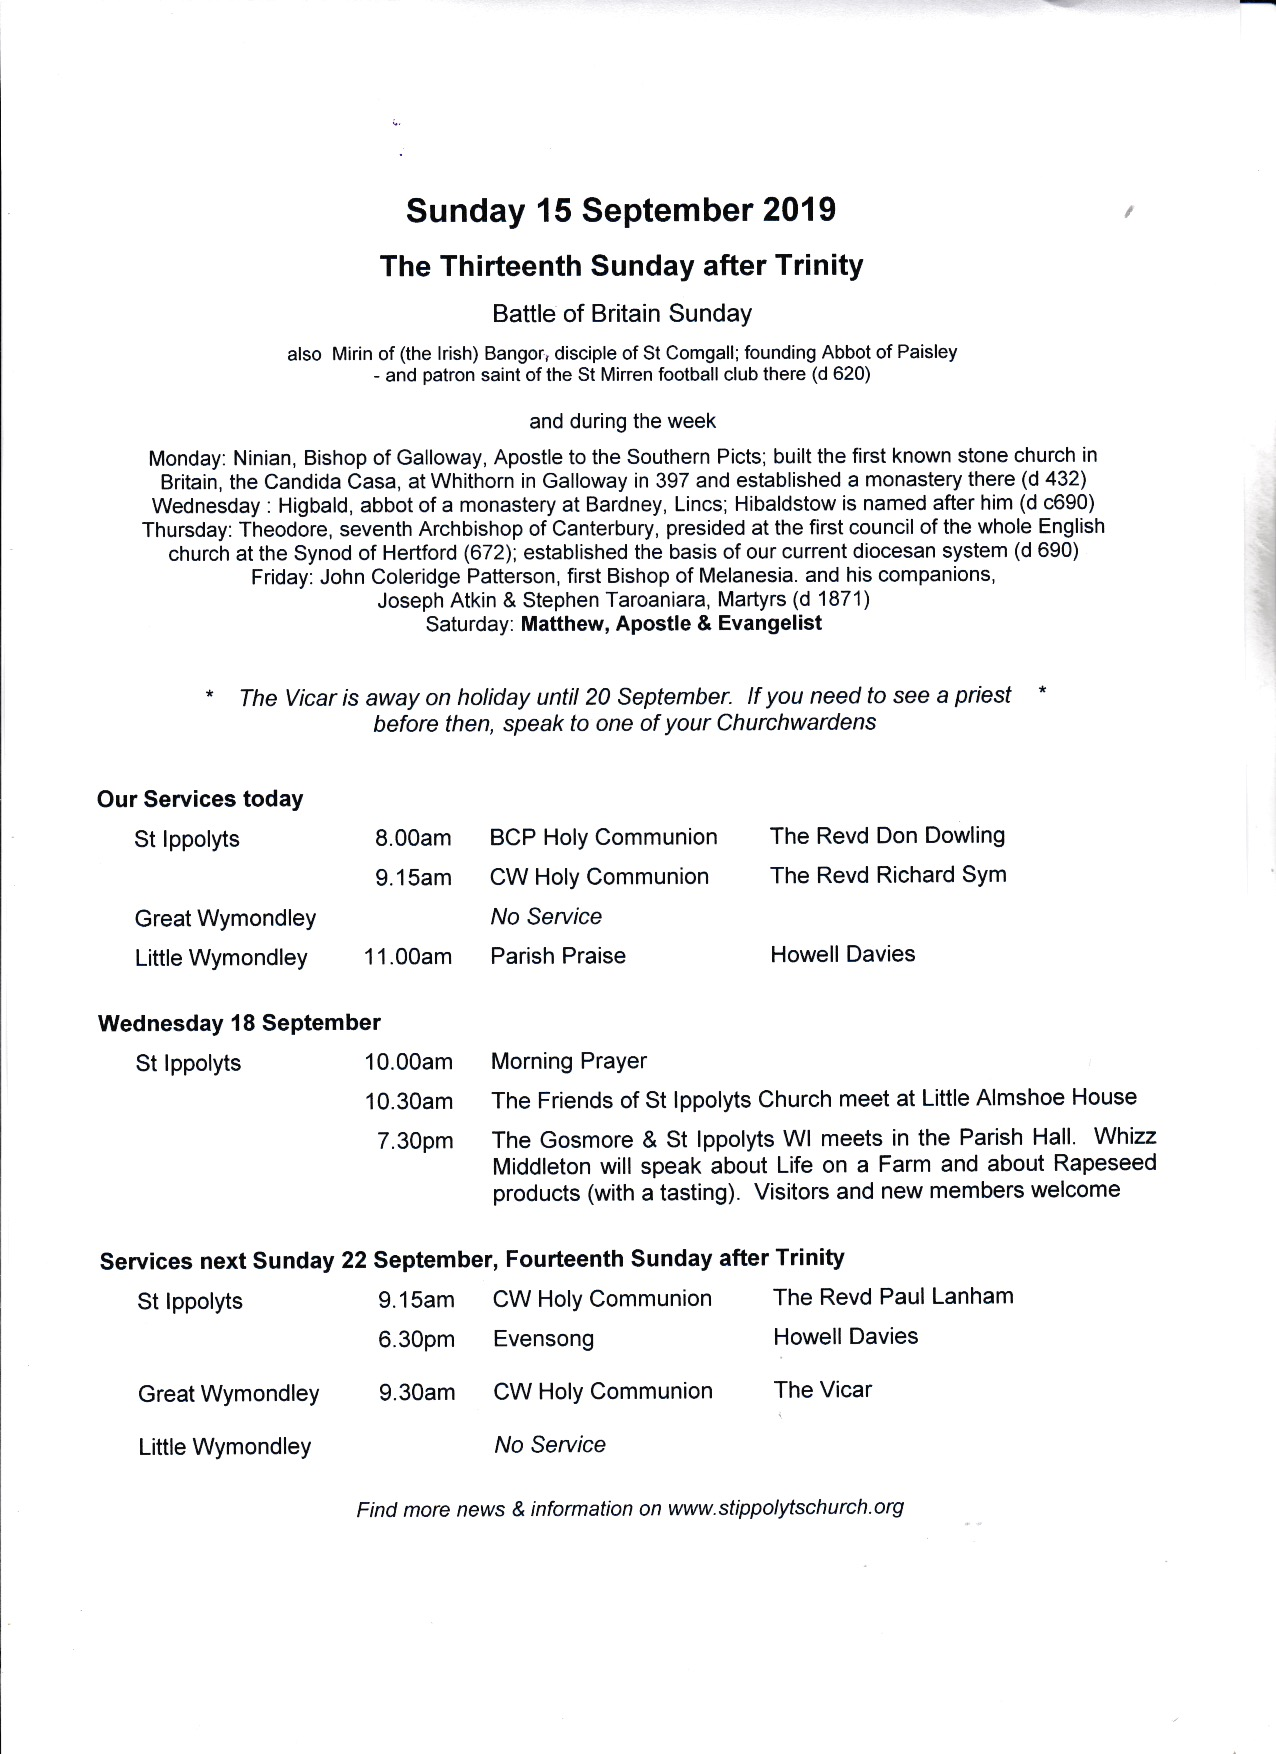 Weekly Pew Sheet, the Thirteenth Sunday after Trinity, 15th September 2019